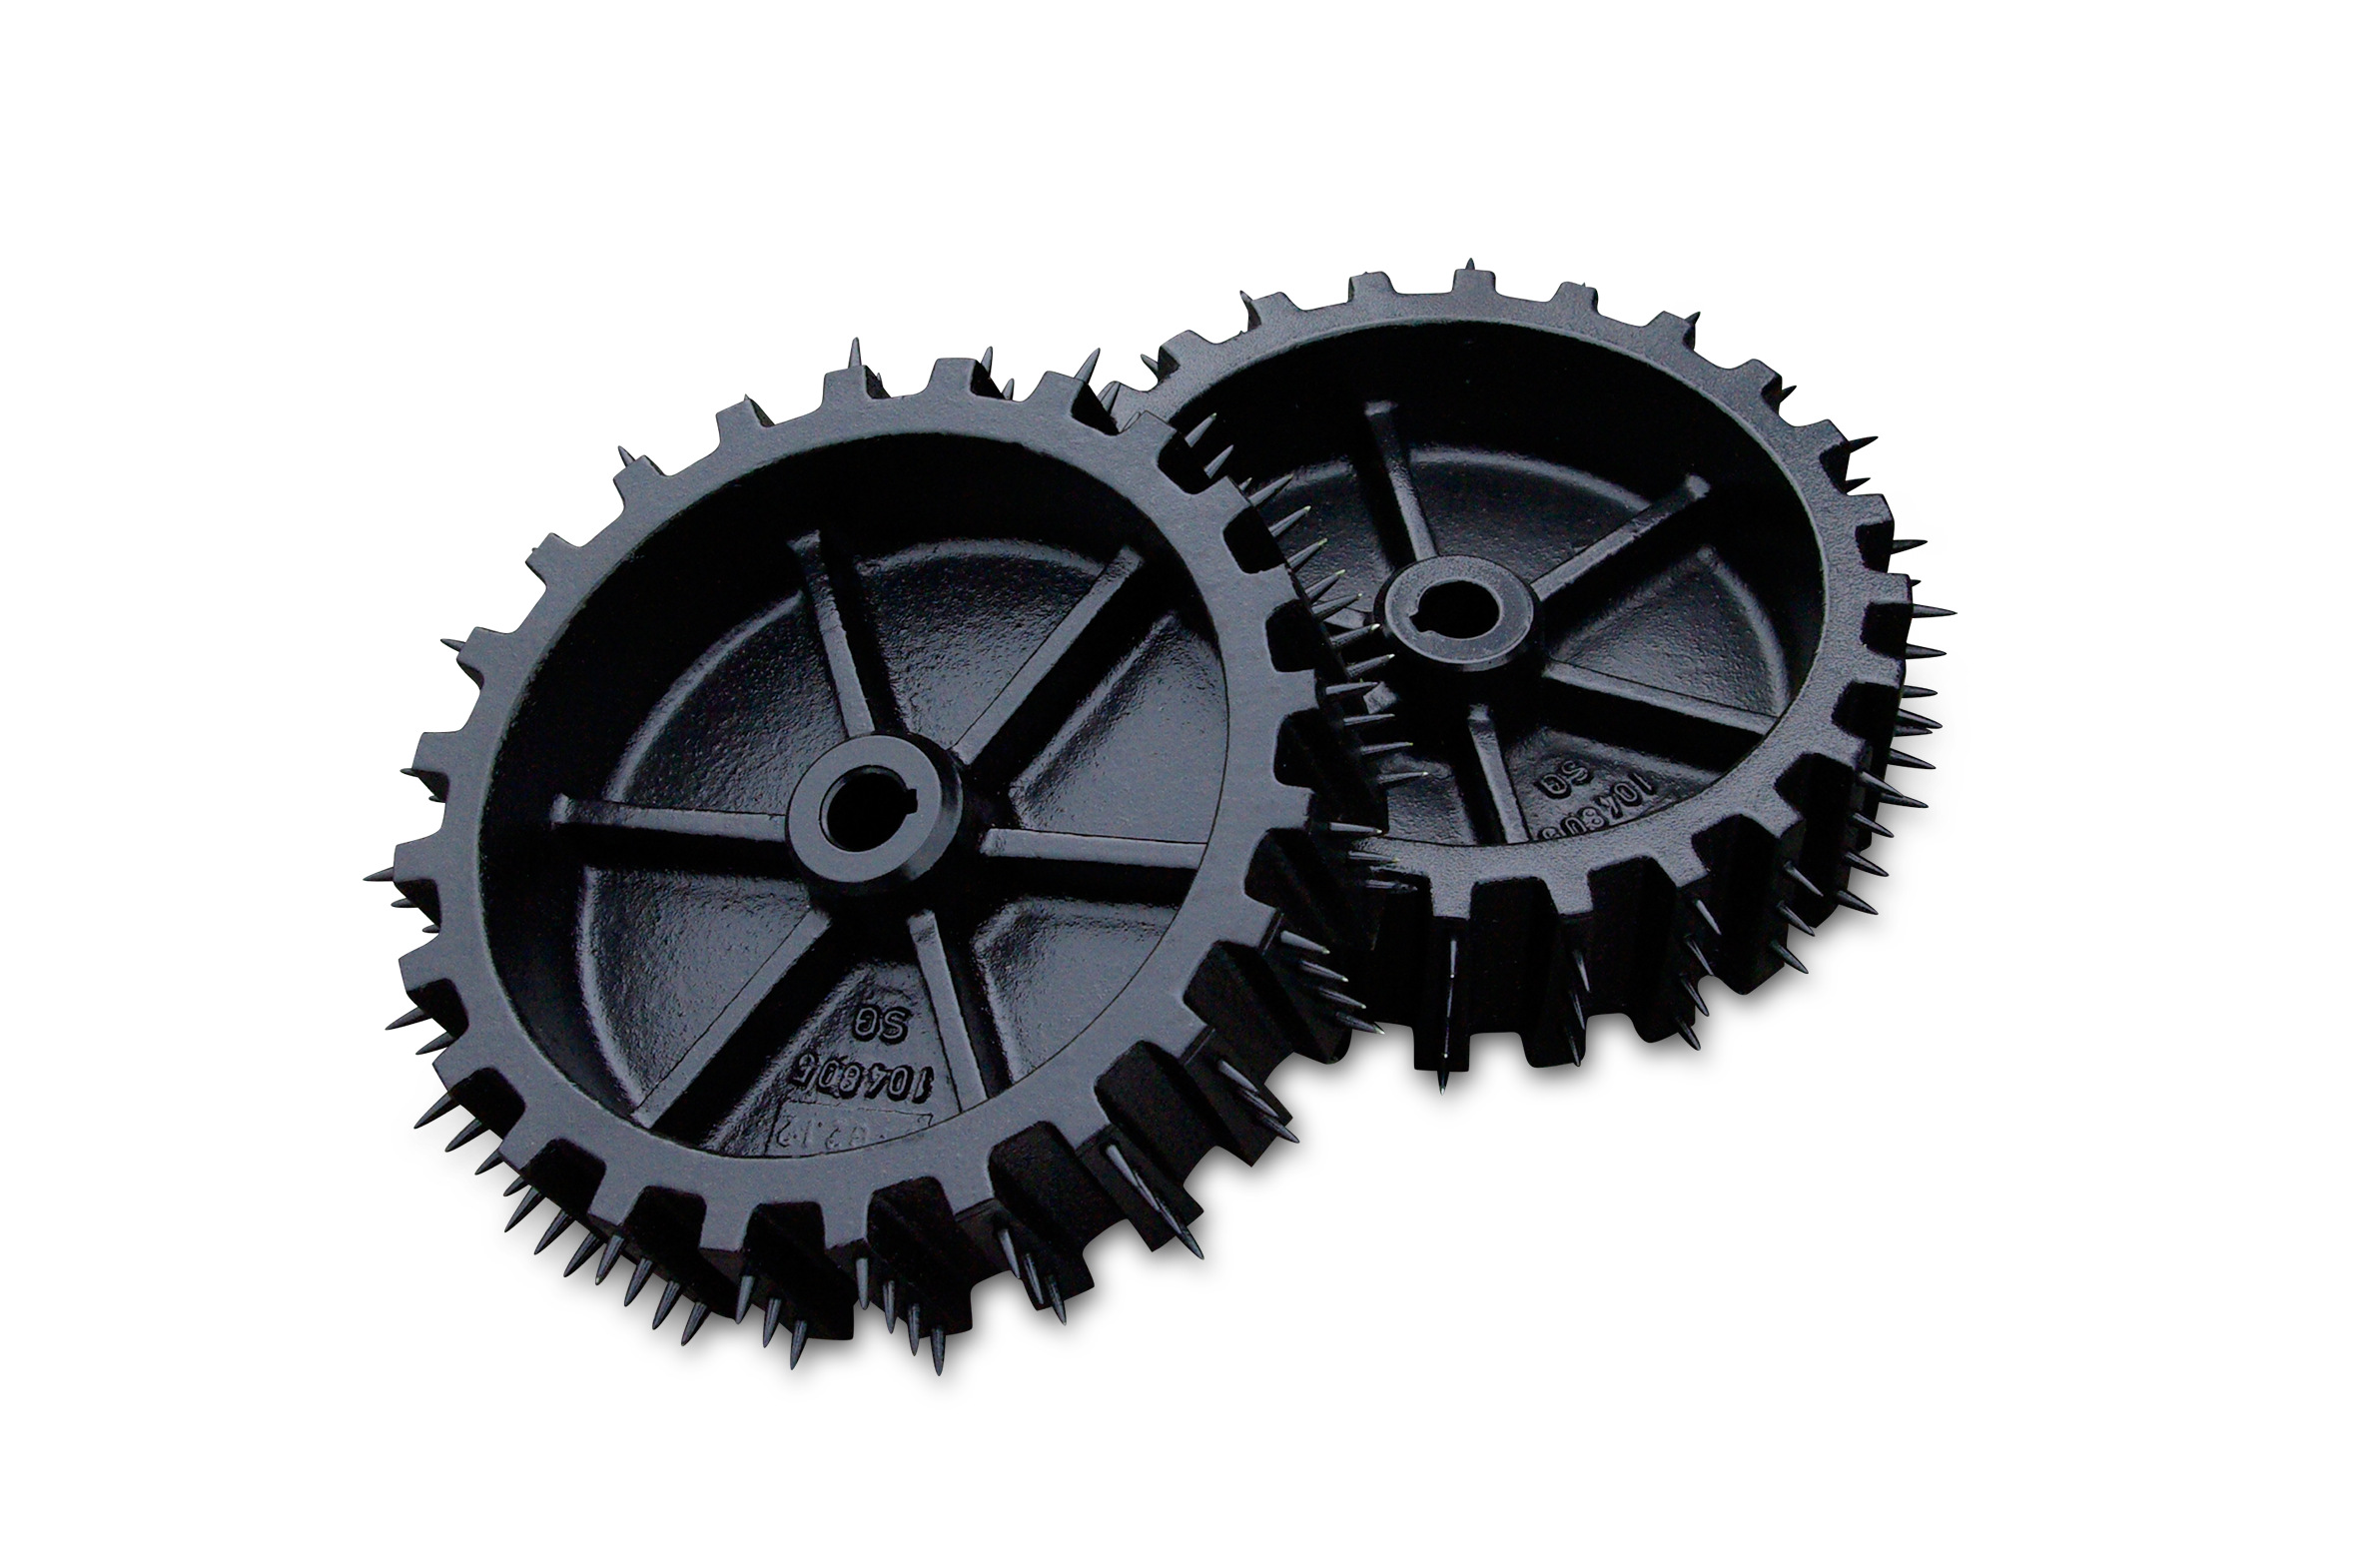 Satz Spikes-Antriebsräder / Set of spike driving wheels